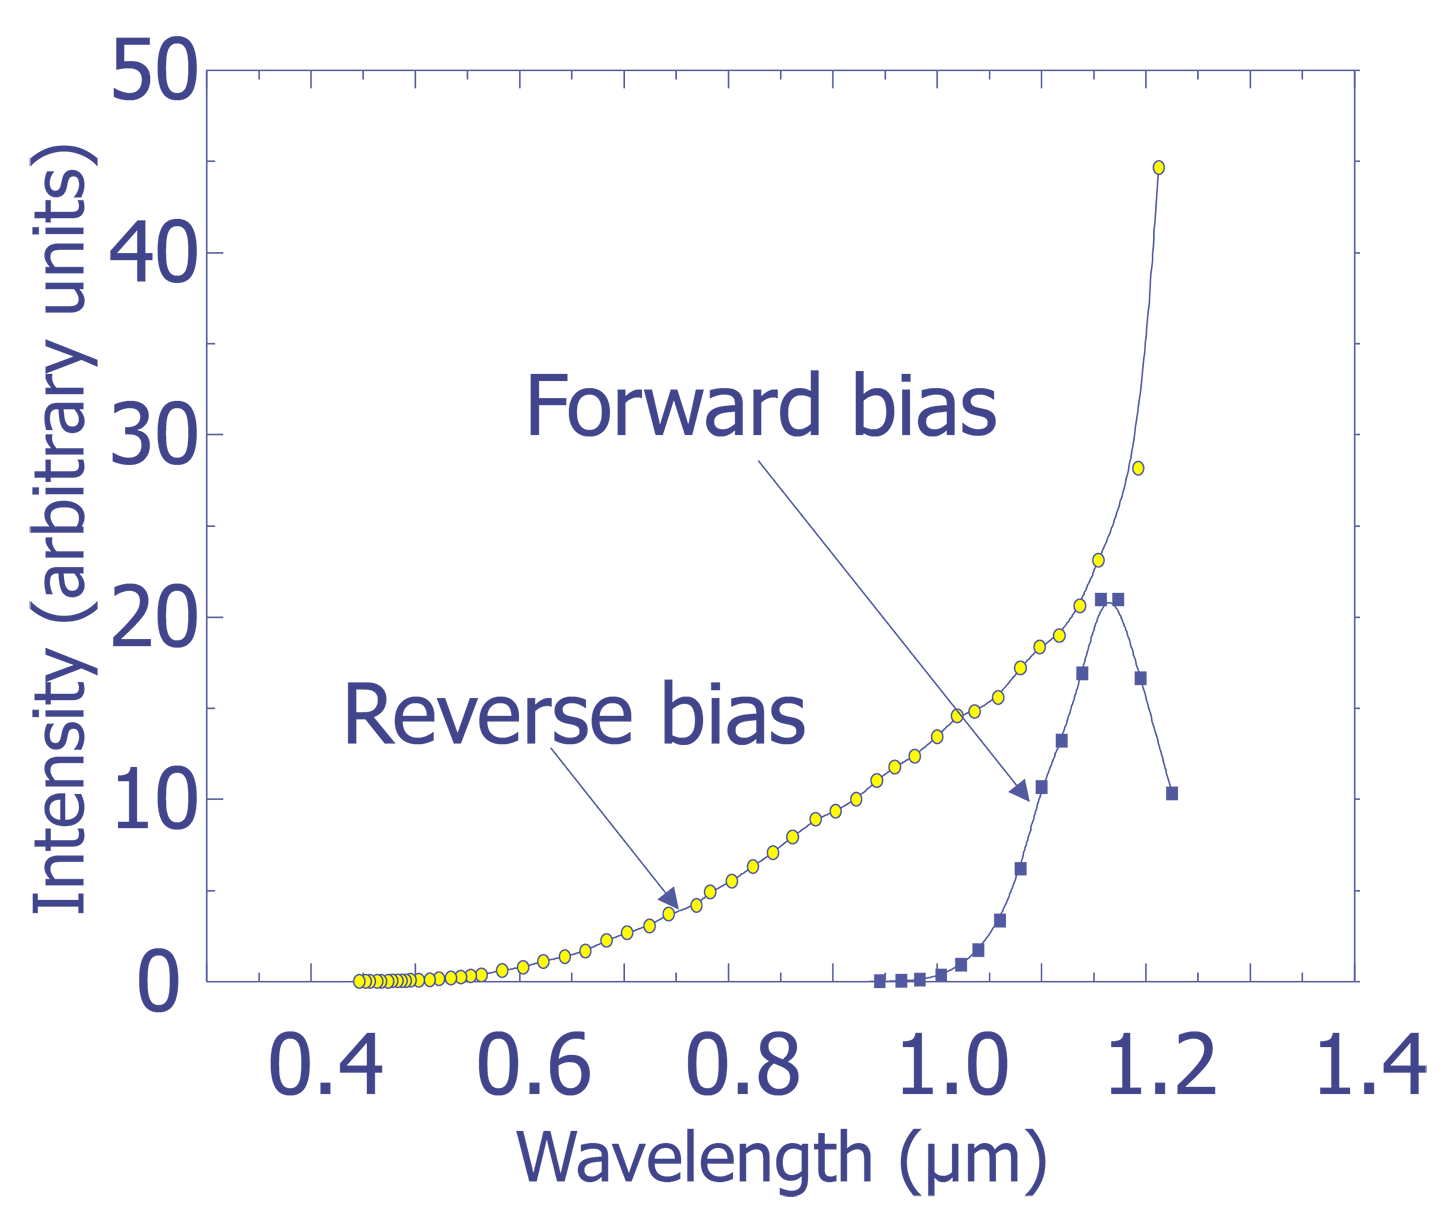 Light Emission Semitracks Figure 11 2 Illustrates A Diode Logic Circuit Which Can Provide The Measured Spectra From Forward And Reverse Biased Si Pn Junctions